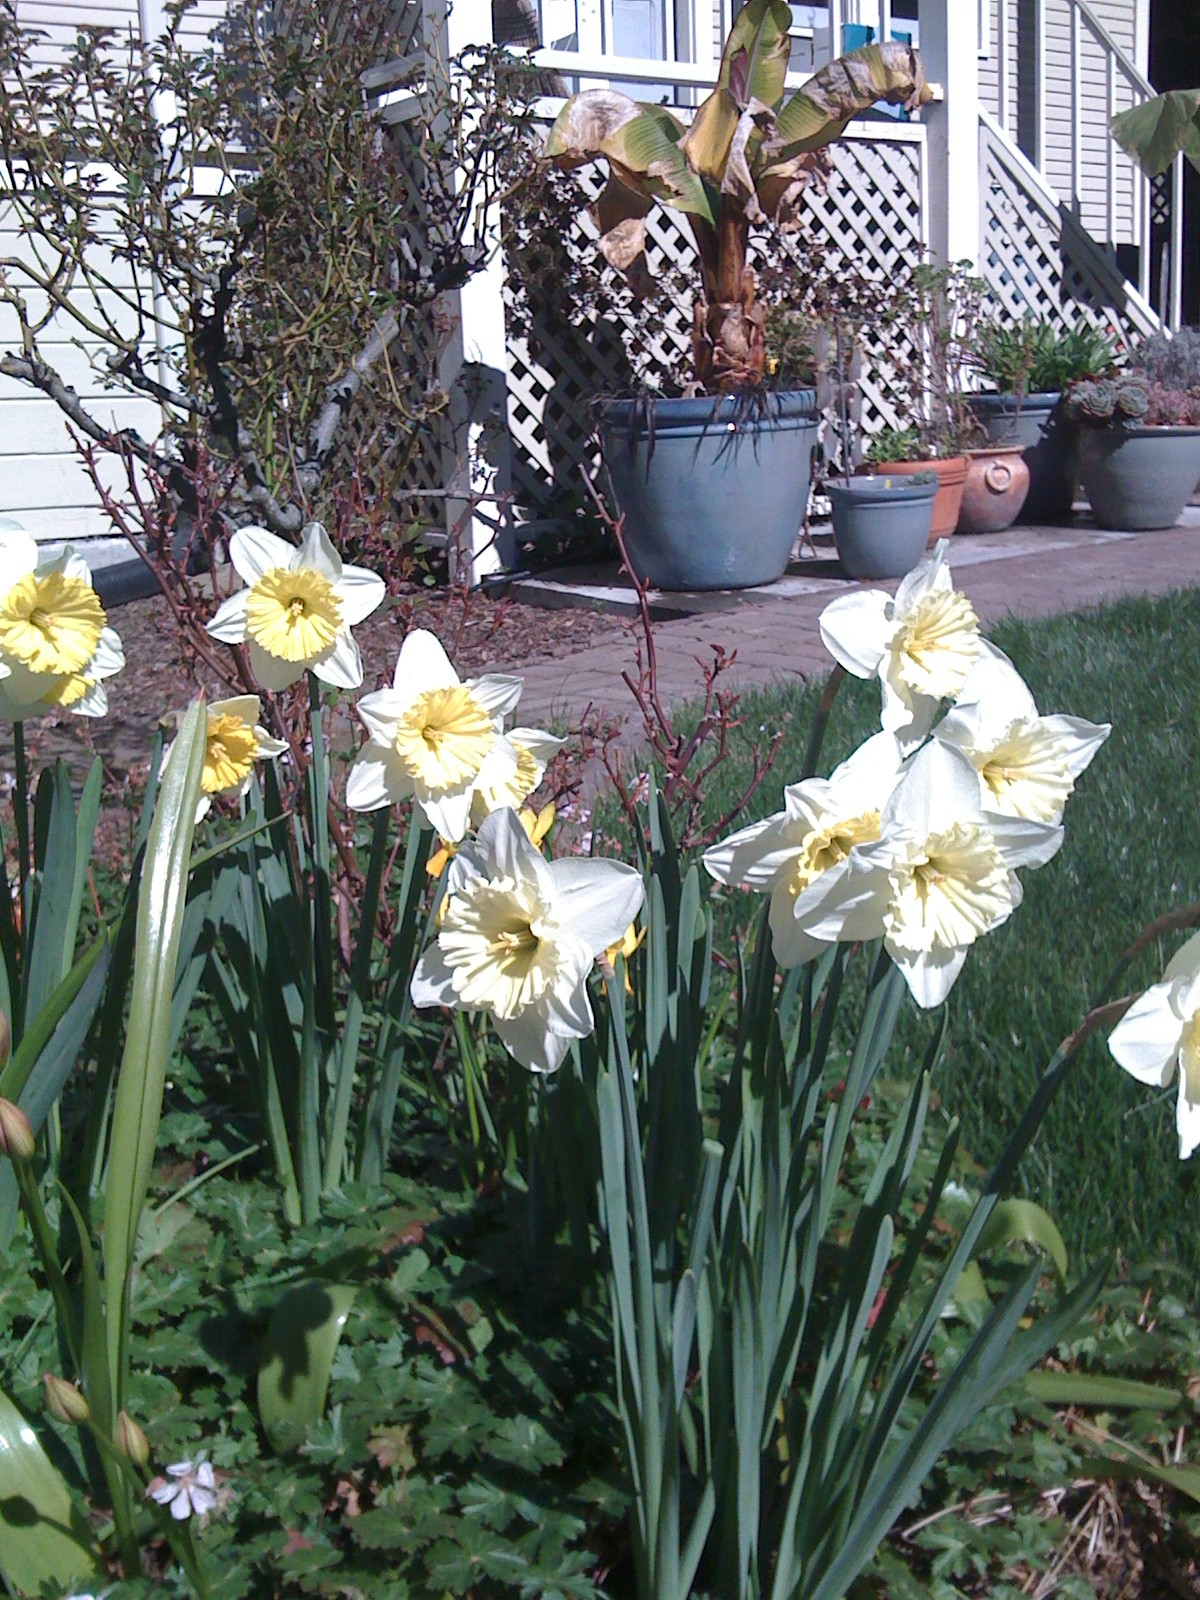 Daffodils provide early spring blooms.